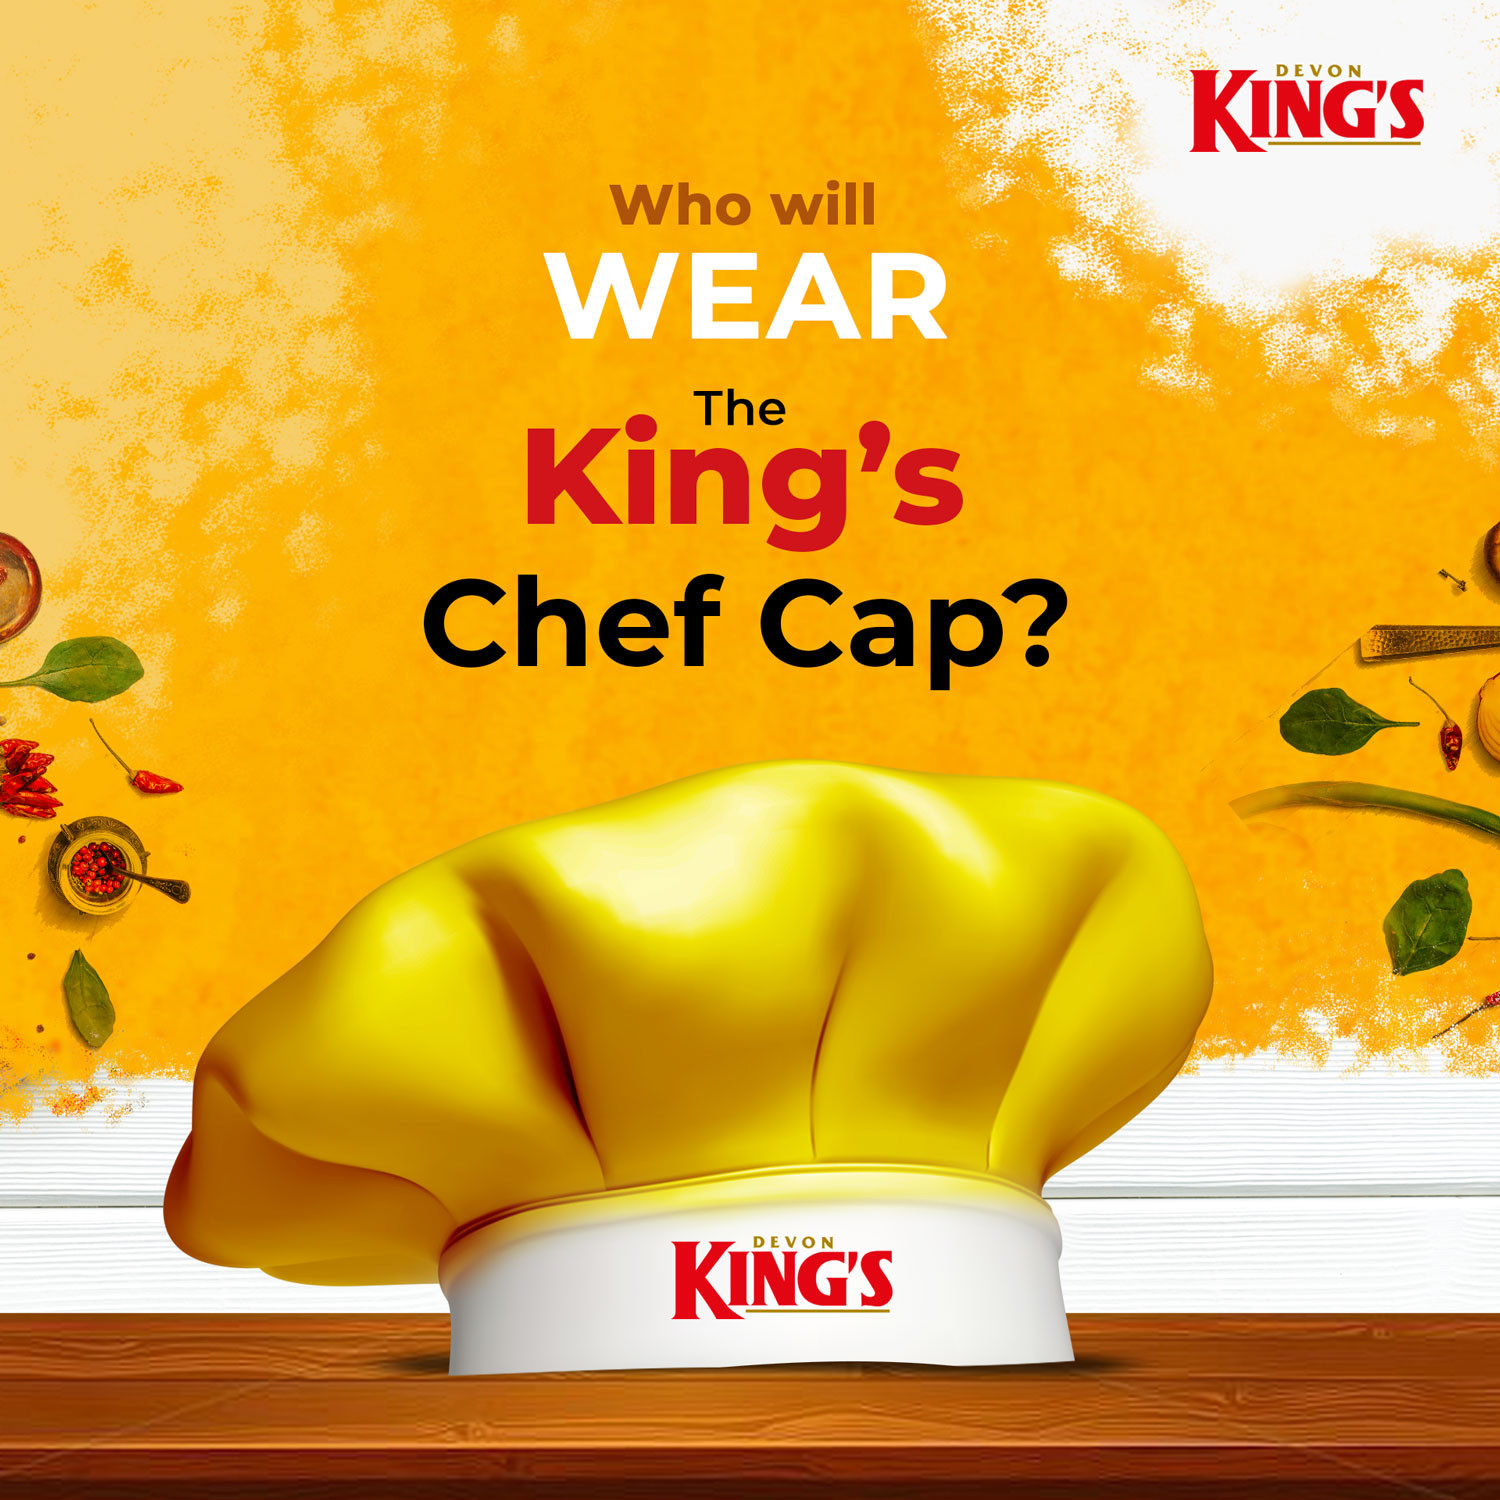 Up to 1 million naira worth prizes up for grabs in the Devon Kings #TheKingsChef challenge lindaikejisblog3